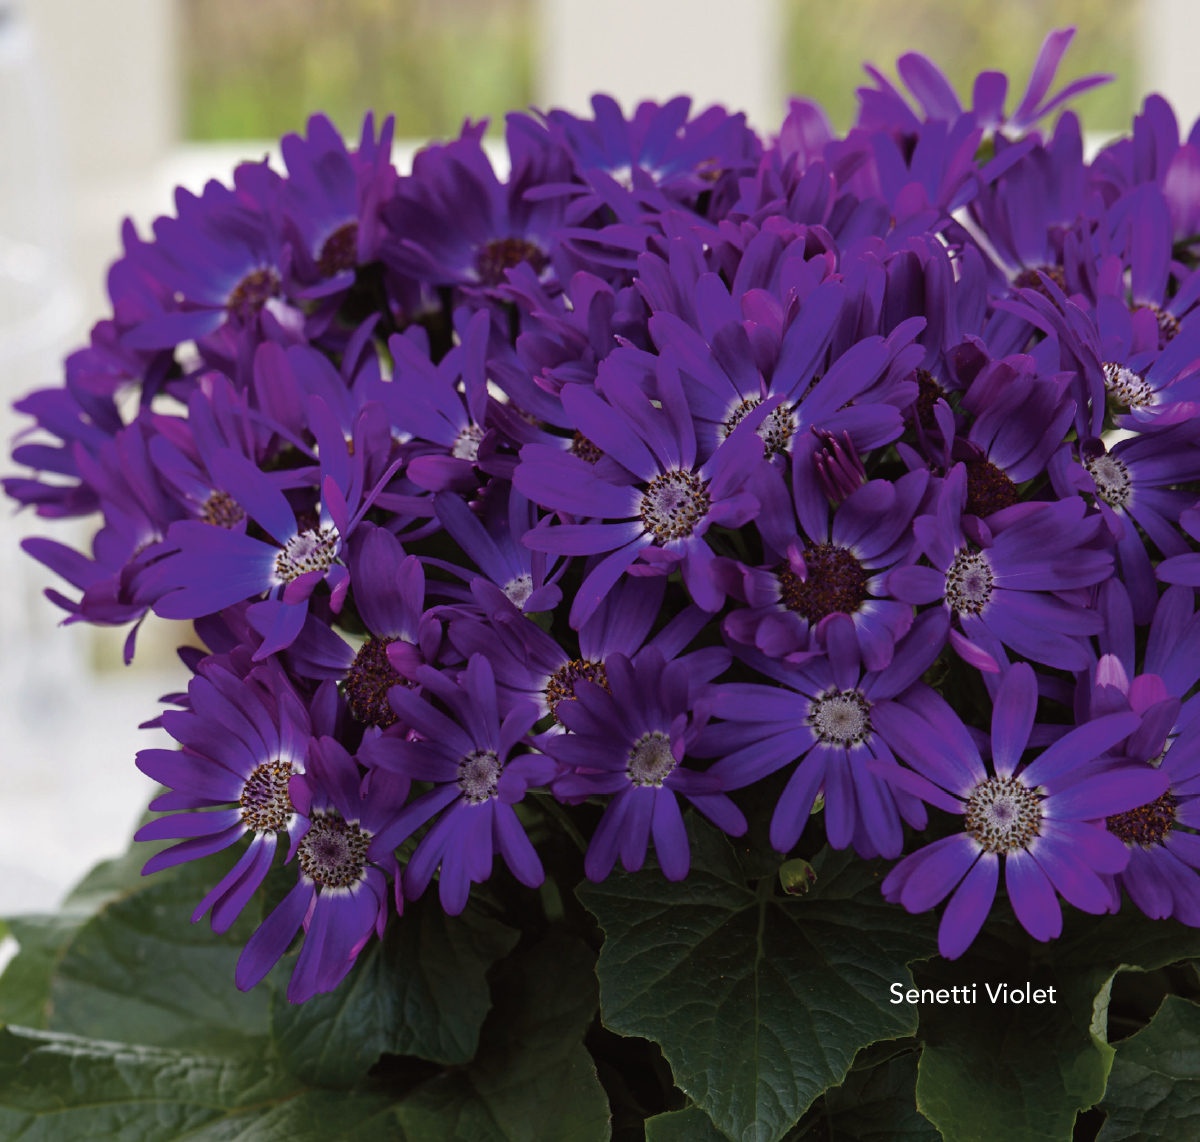 Senetti Violet is midsized in growth, in between the more vigorous Senetti Bicolors and more compact Sparkles.